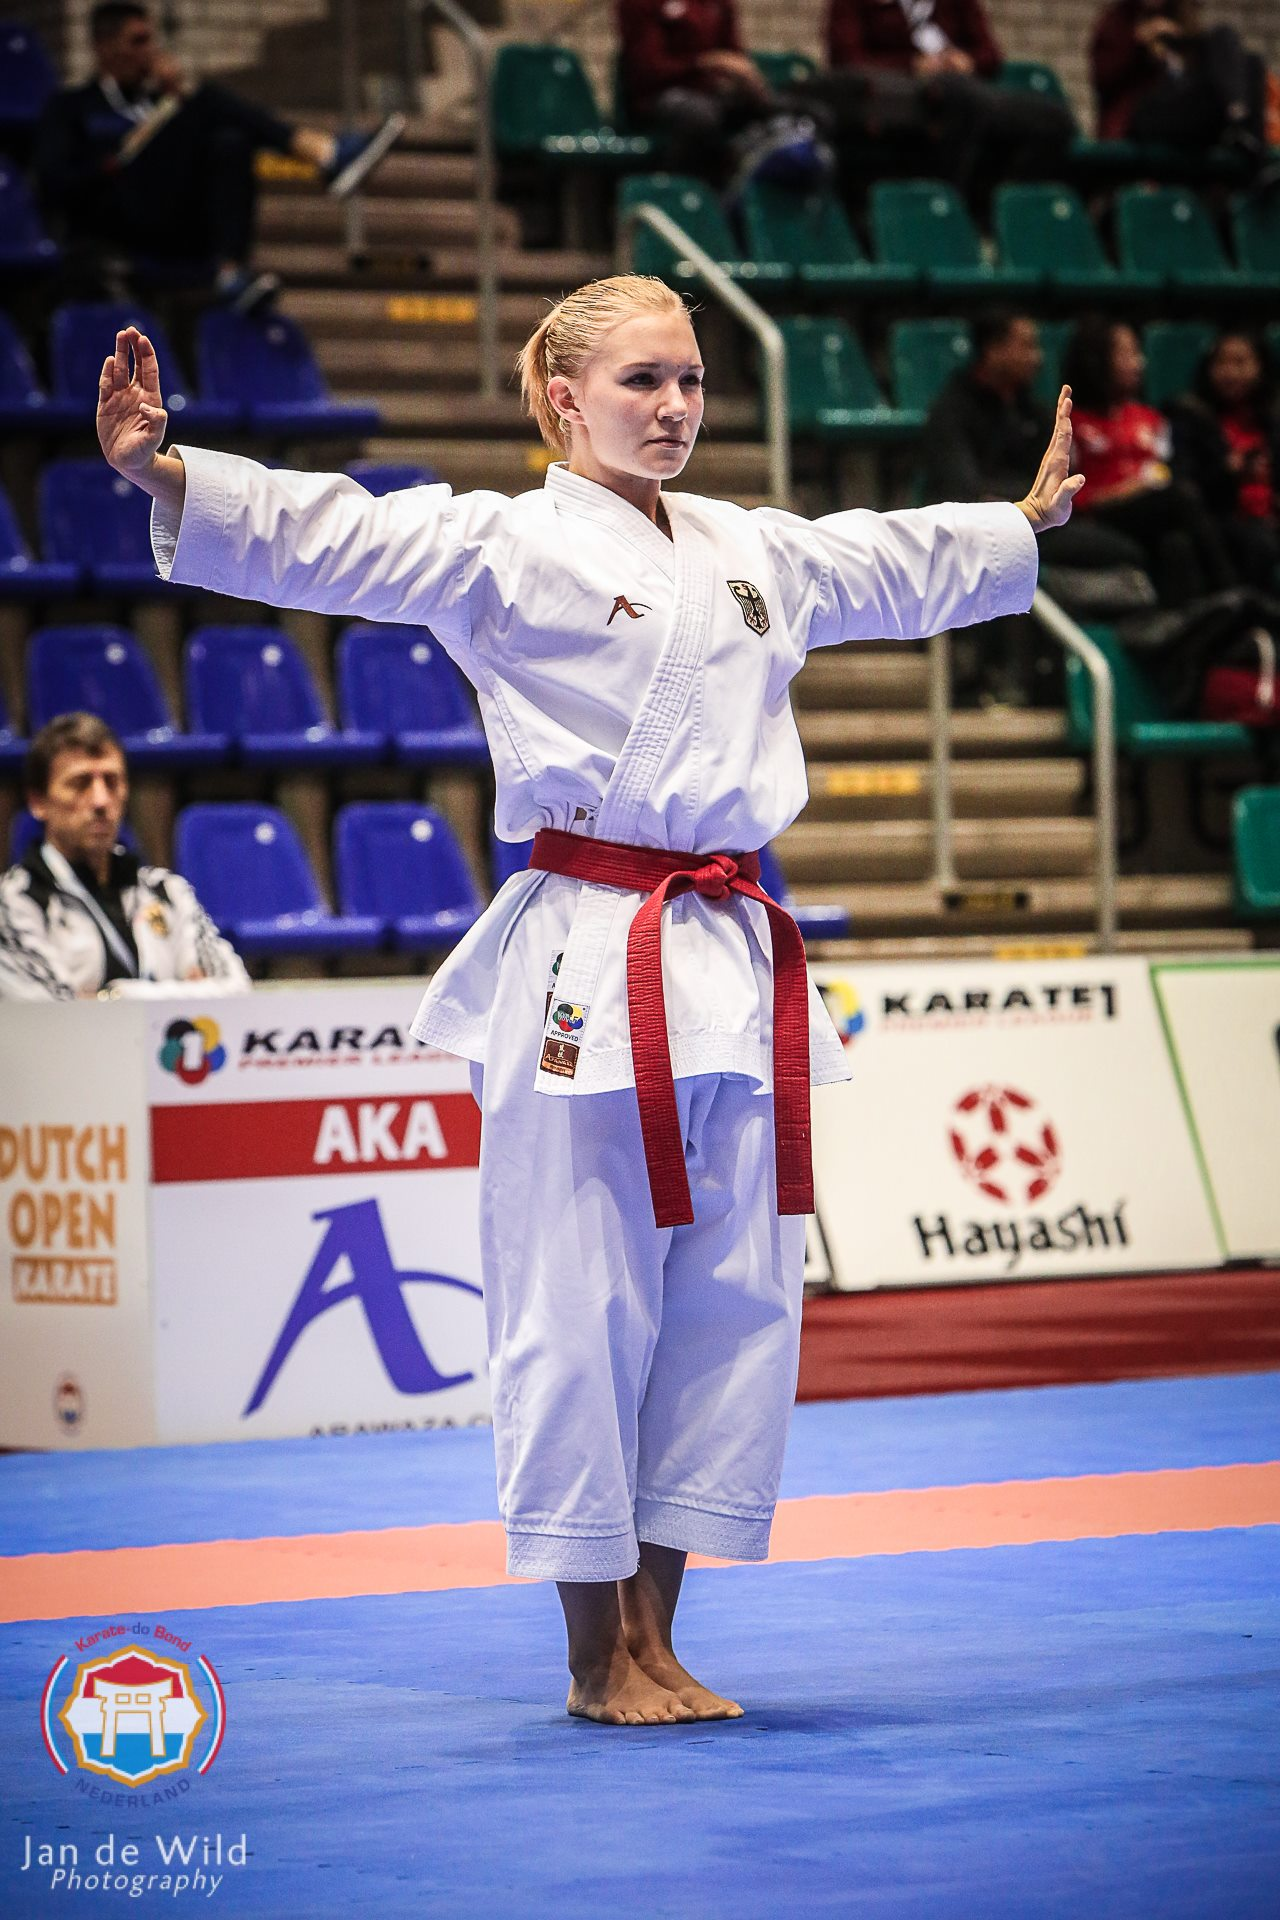 Foto album Karate1 Premier League 2018 (Rotterdam)